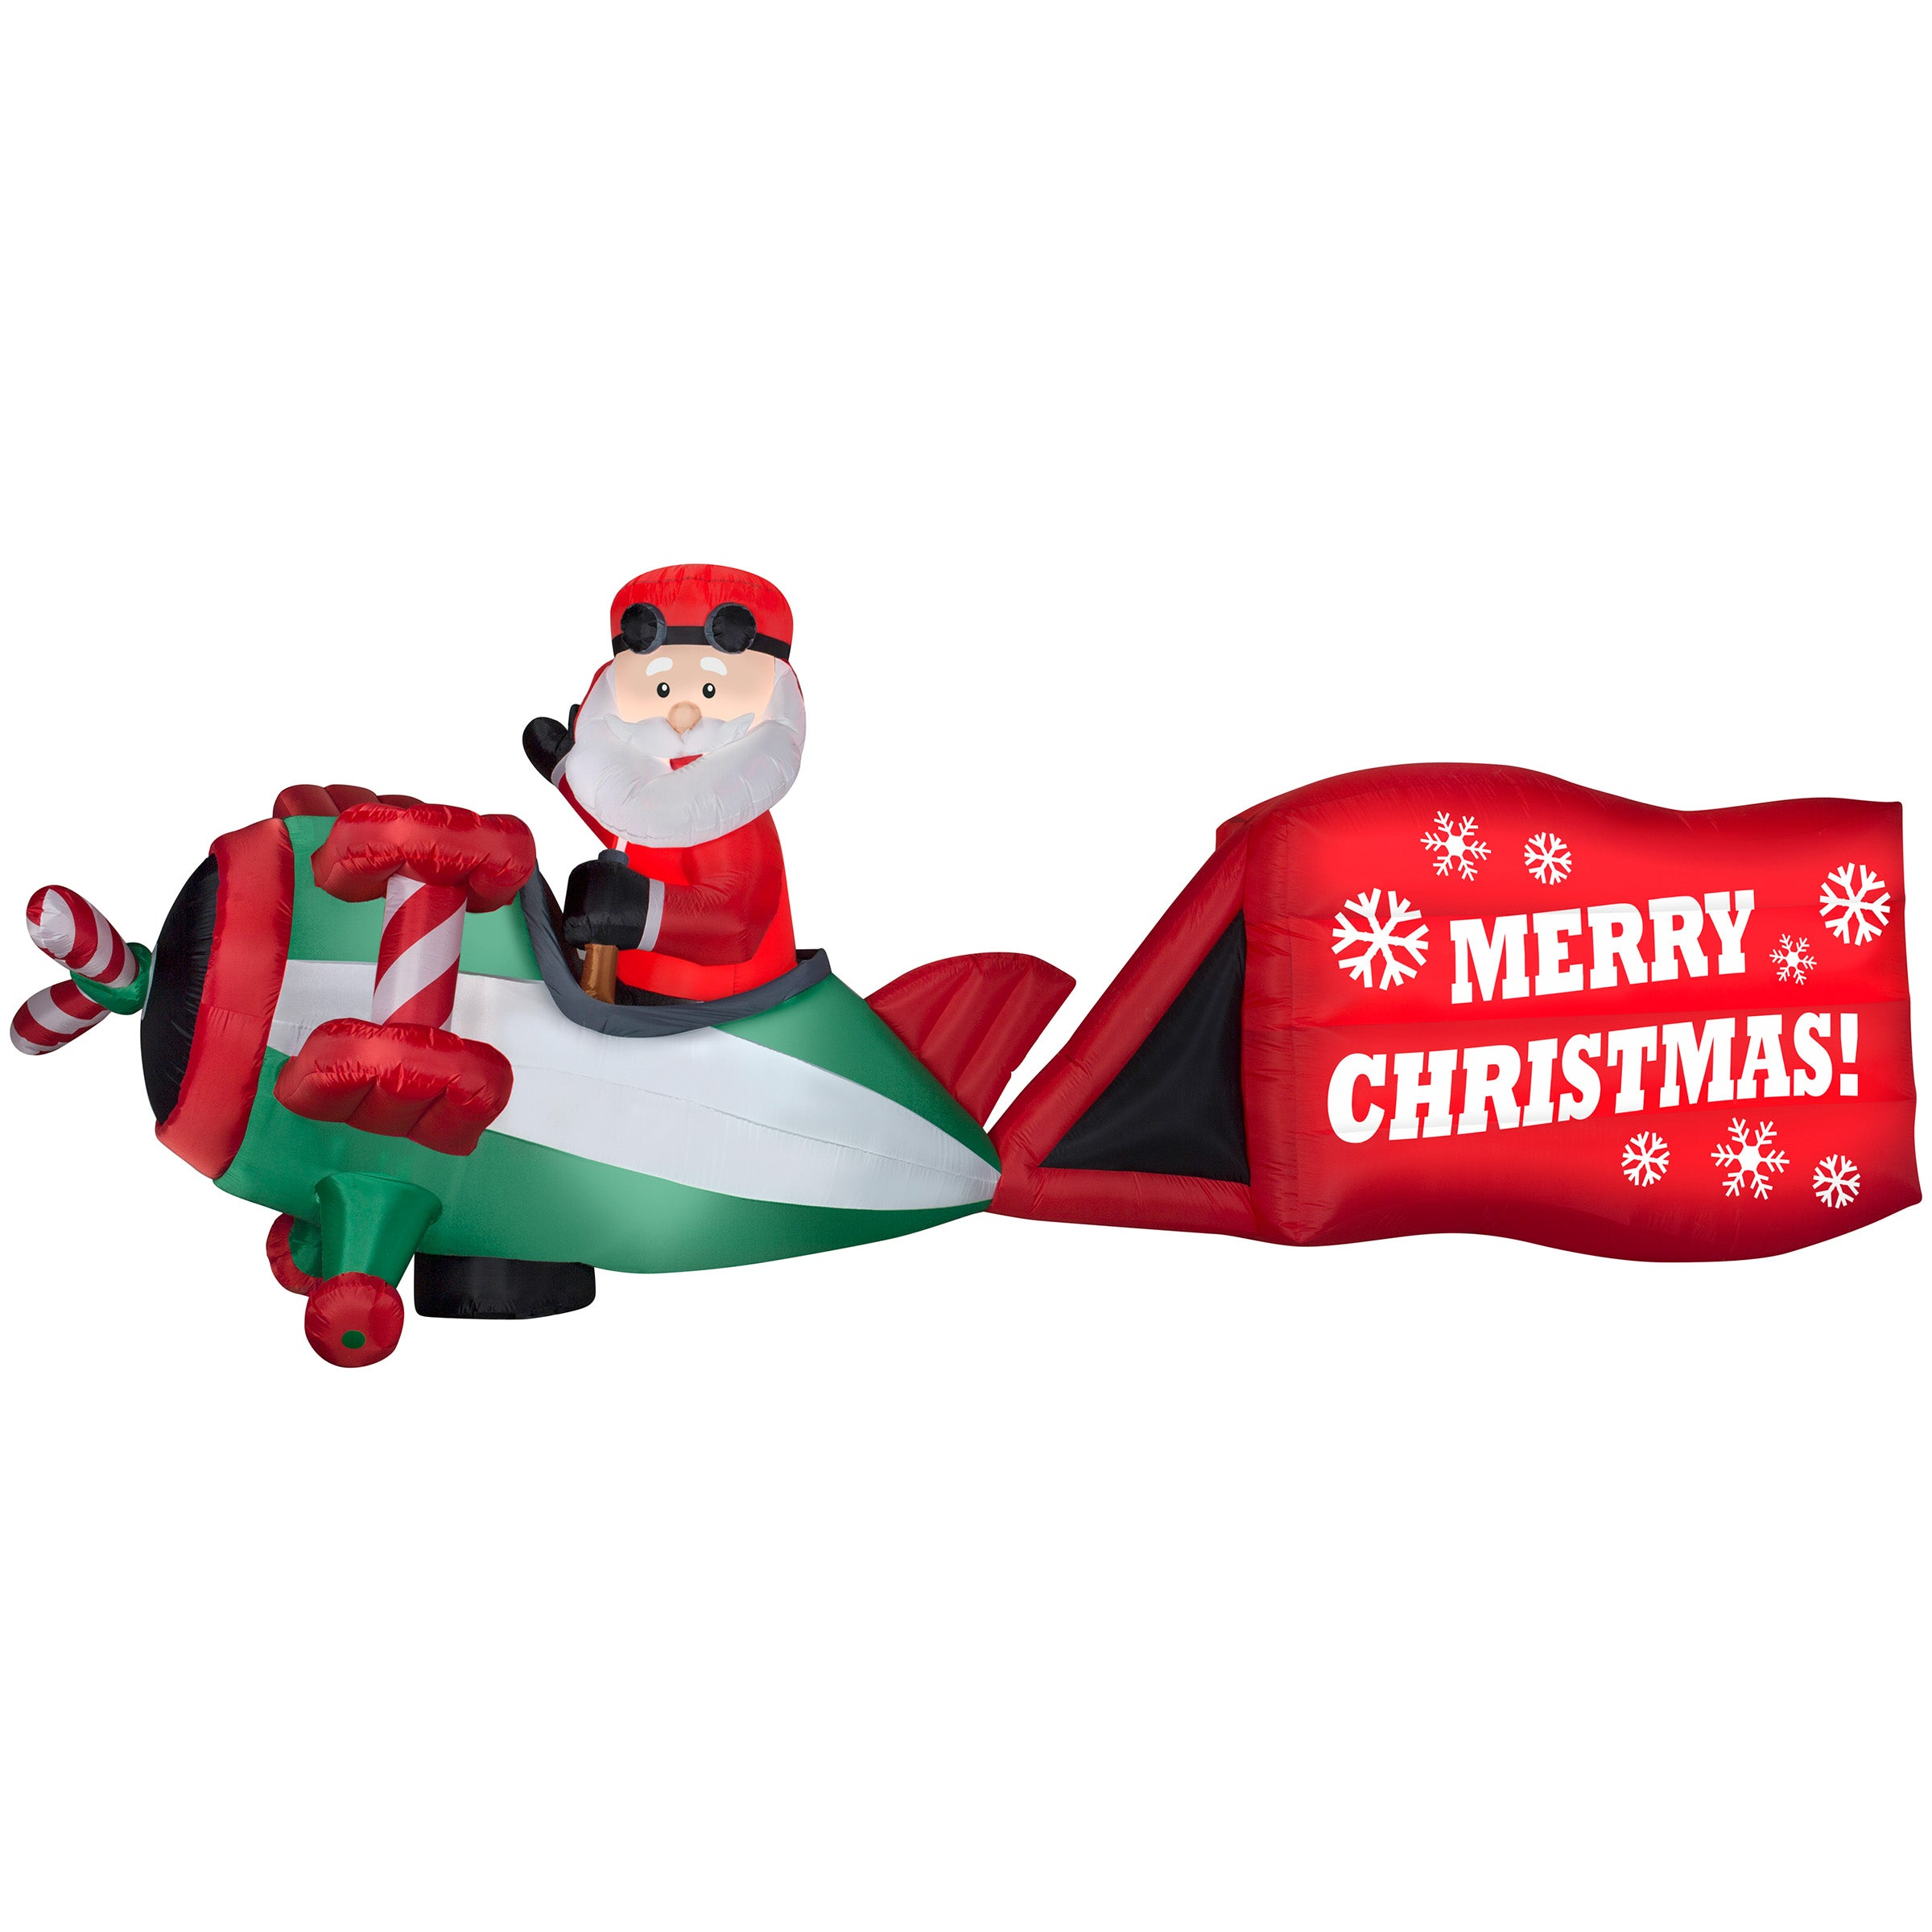 16' Wide Airblown Santa on Airplane Christmas Inflatable